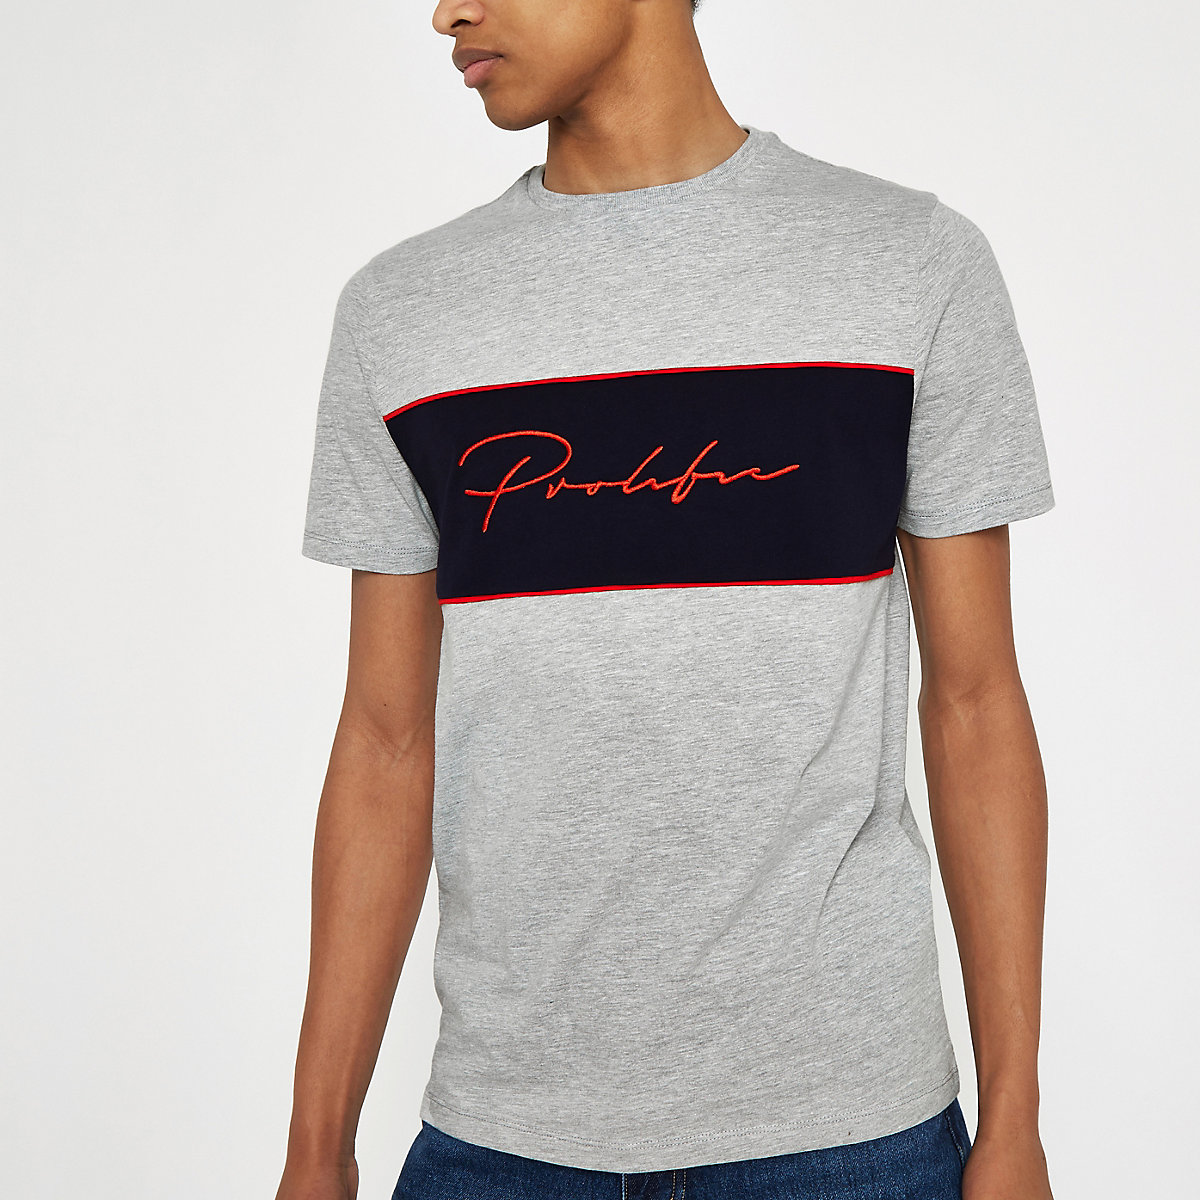 Grey marl 'Prolific' embroidered T-shirt